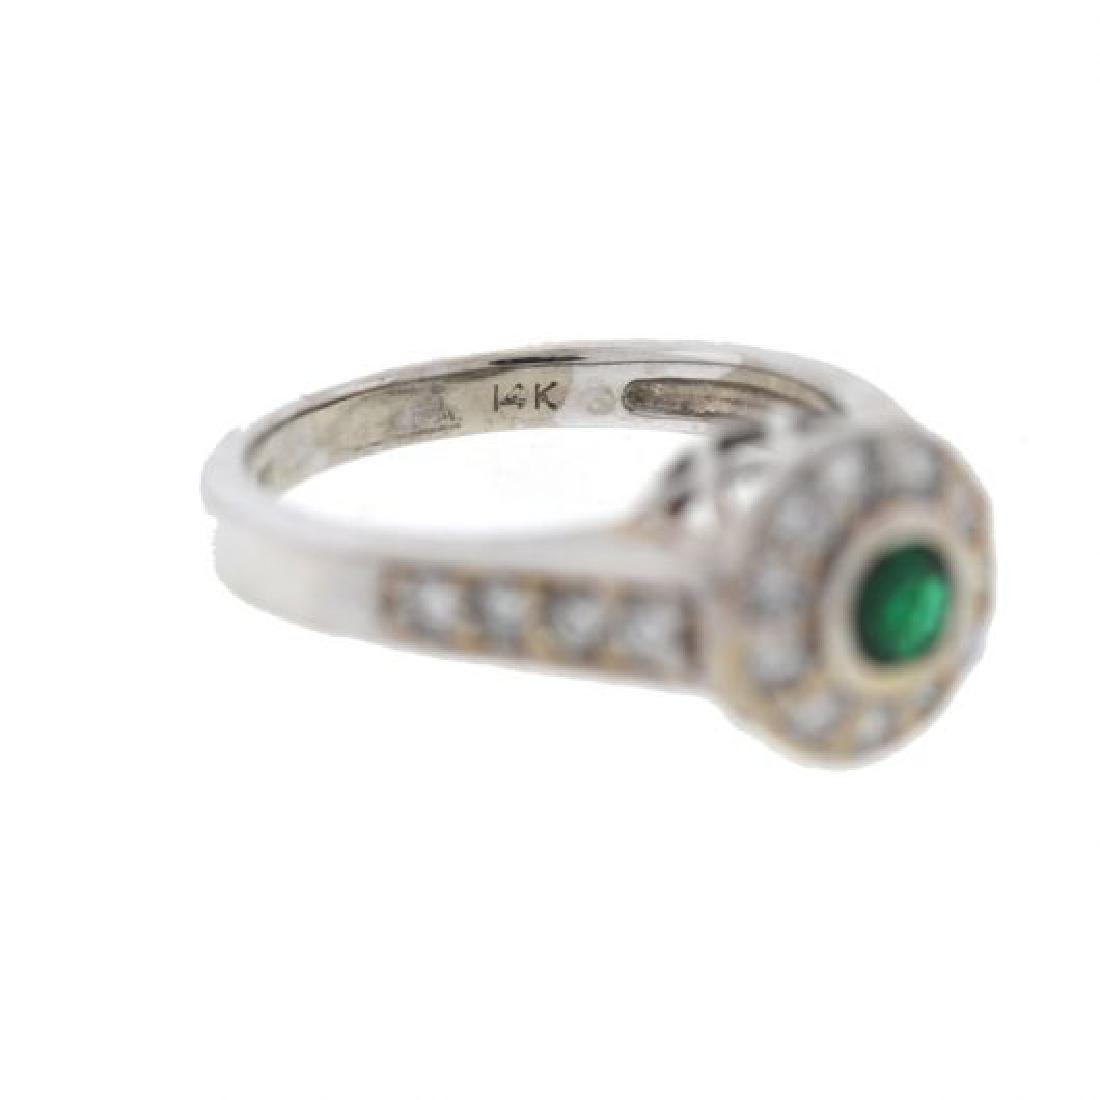 14k Gold Emerald/Diamonds Ladies Ring - 2